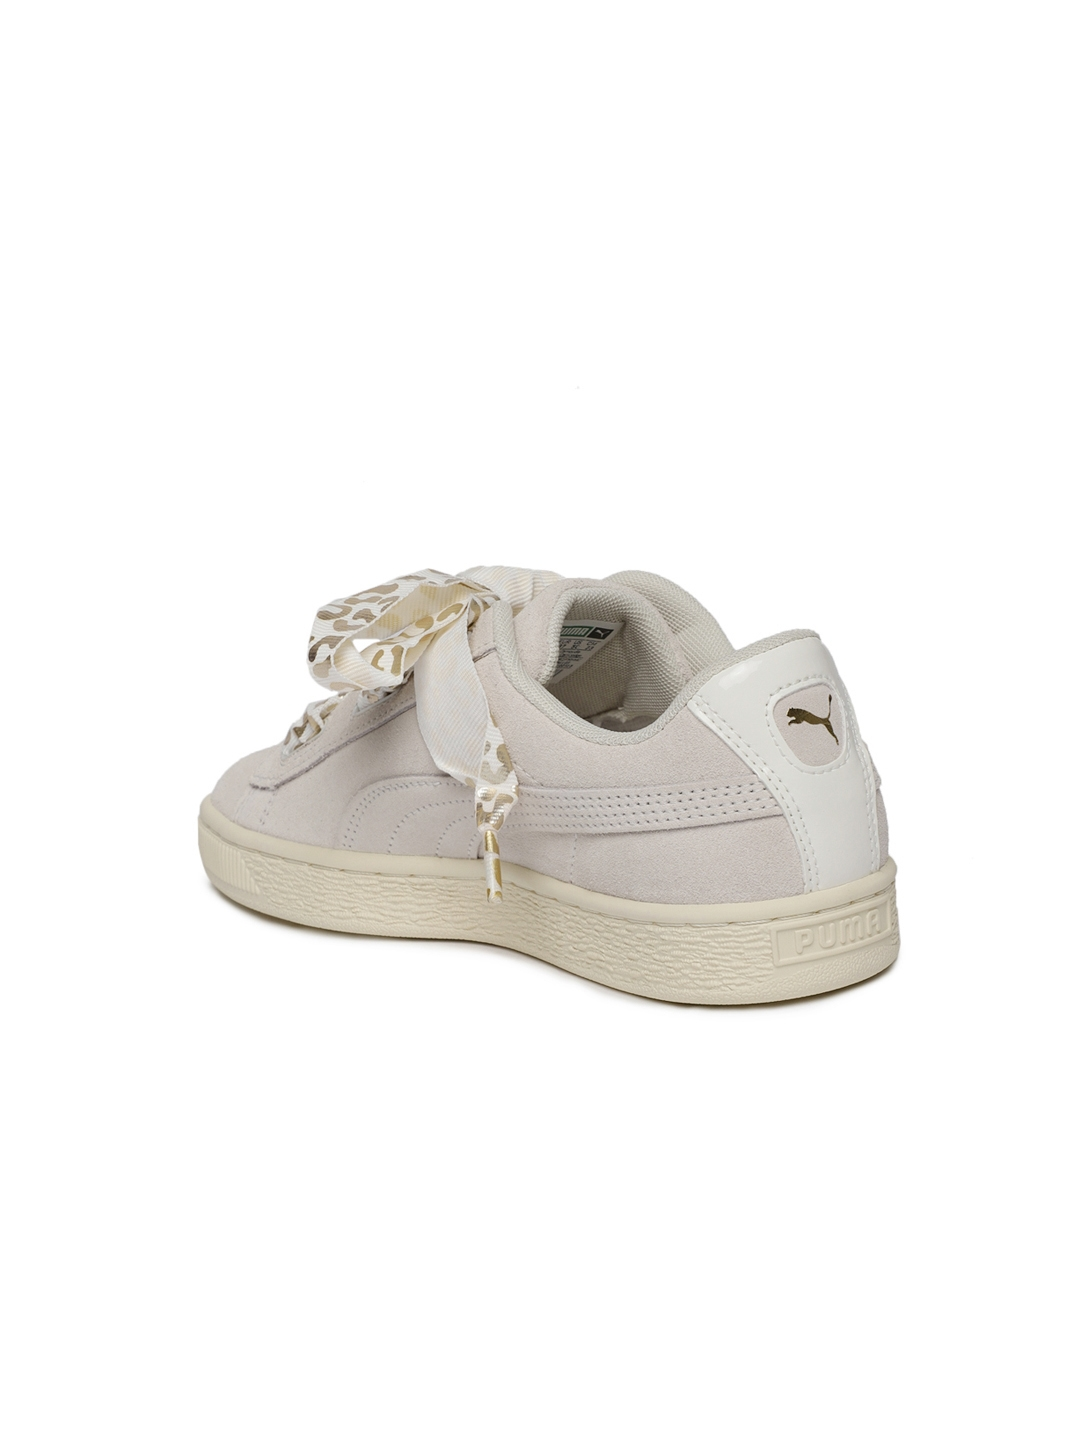 93f51a74505 Buy Puma Girls Beige Suede Heart AthLuxe Sneakers - Casual Shoes for ...